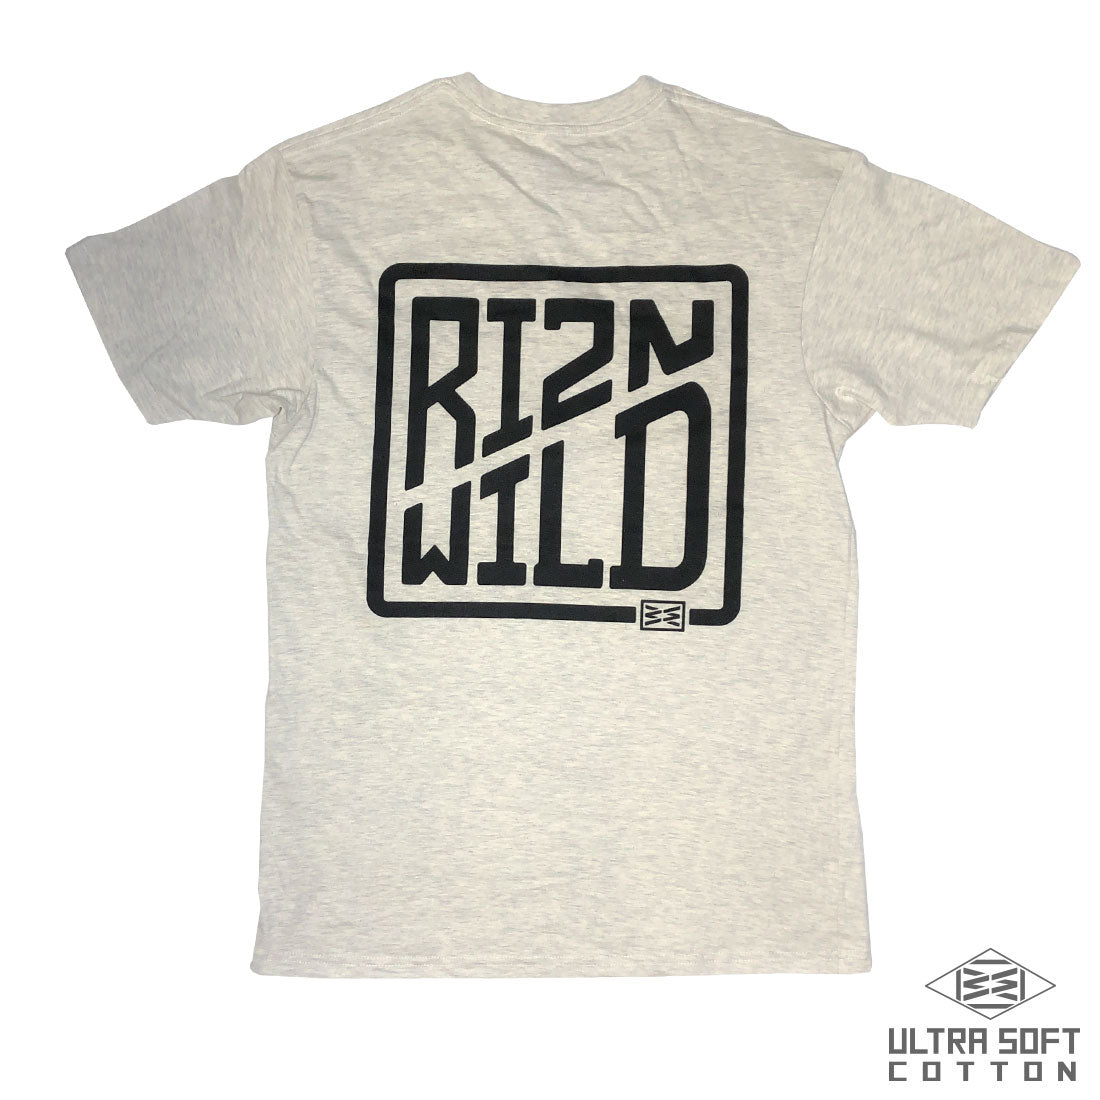 Cased Mens Ultra Soft Tee in Oatmeal Heather